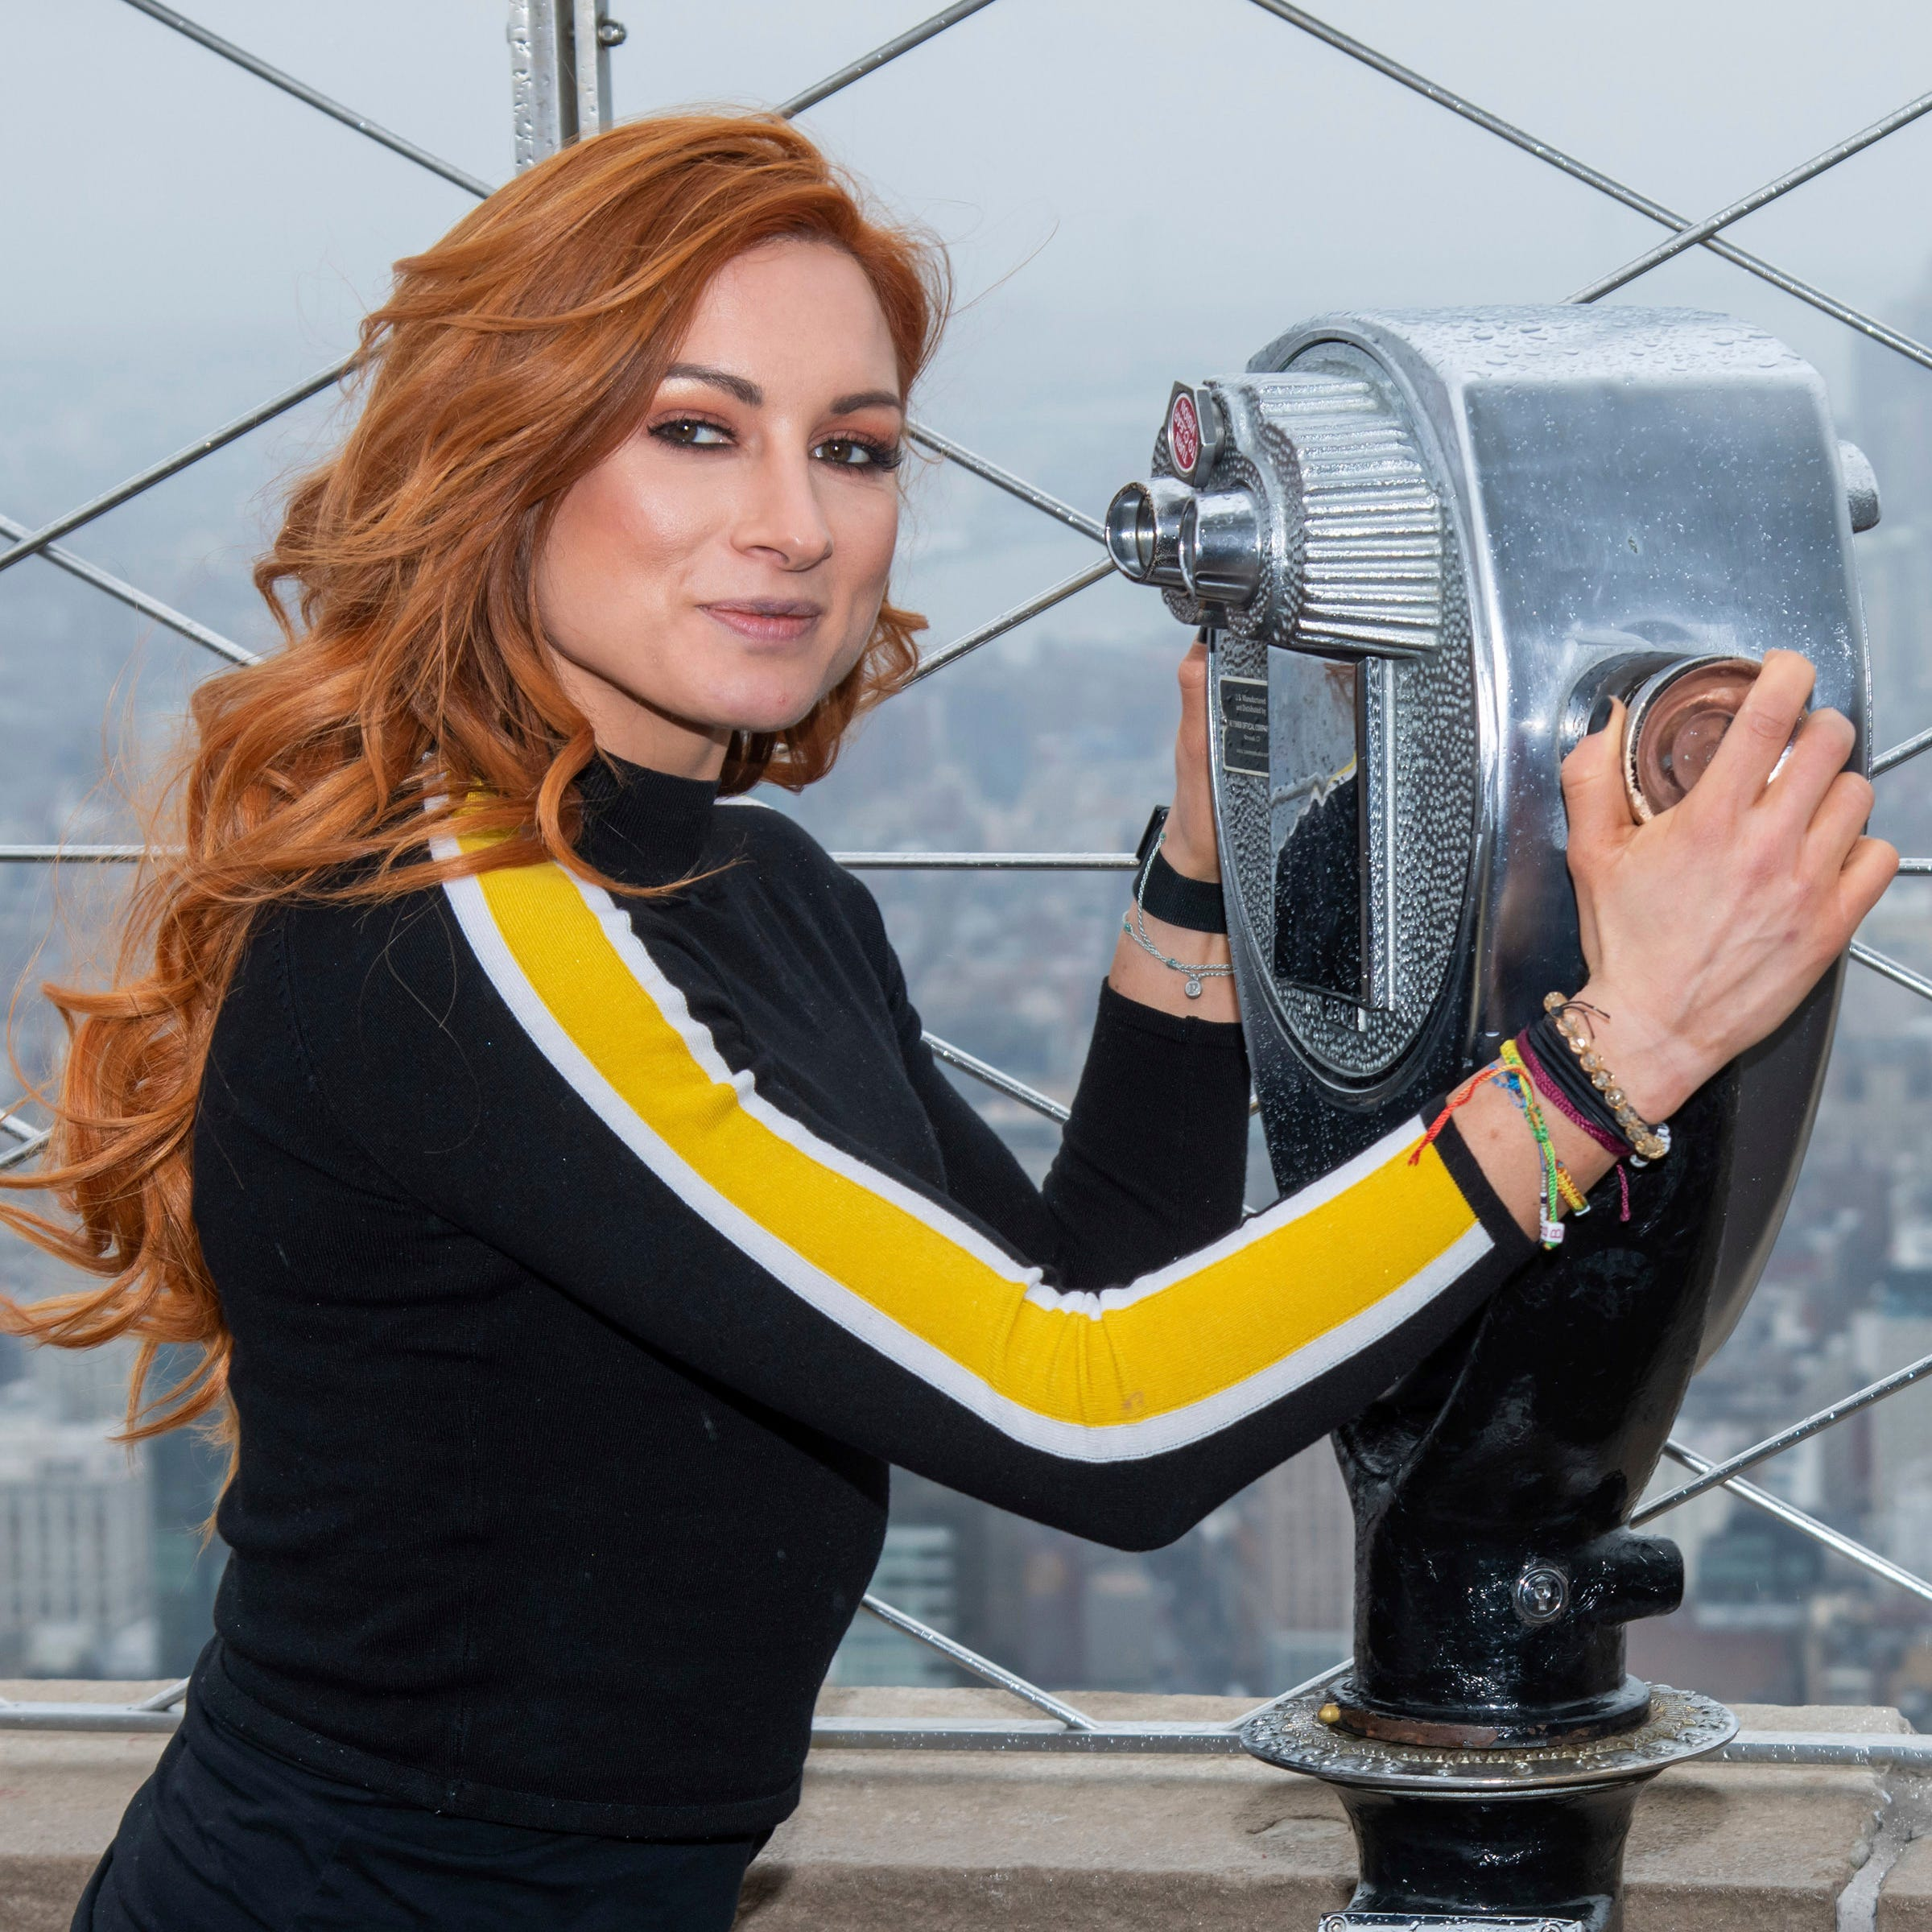 WWE Superstar Becky Lynch visits the Empire State Building to promote WrestleMania 35 on Friday, April 5, 2019, in New York. (Photo by Charles Sykes/Invision/AP) ORG XMIT: NYCS106